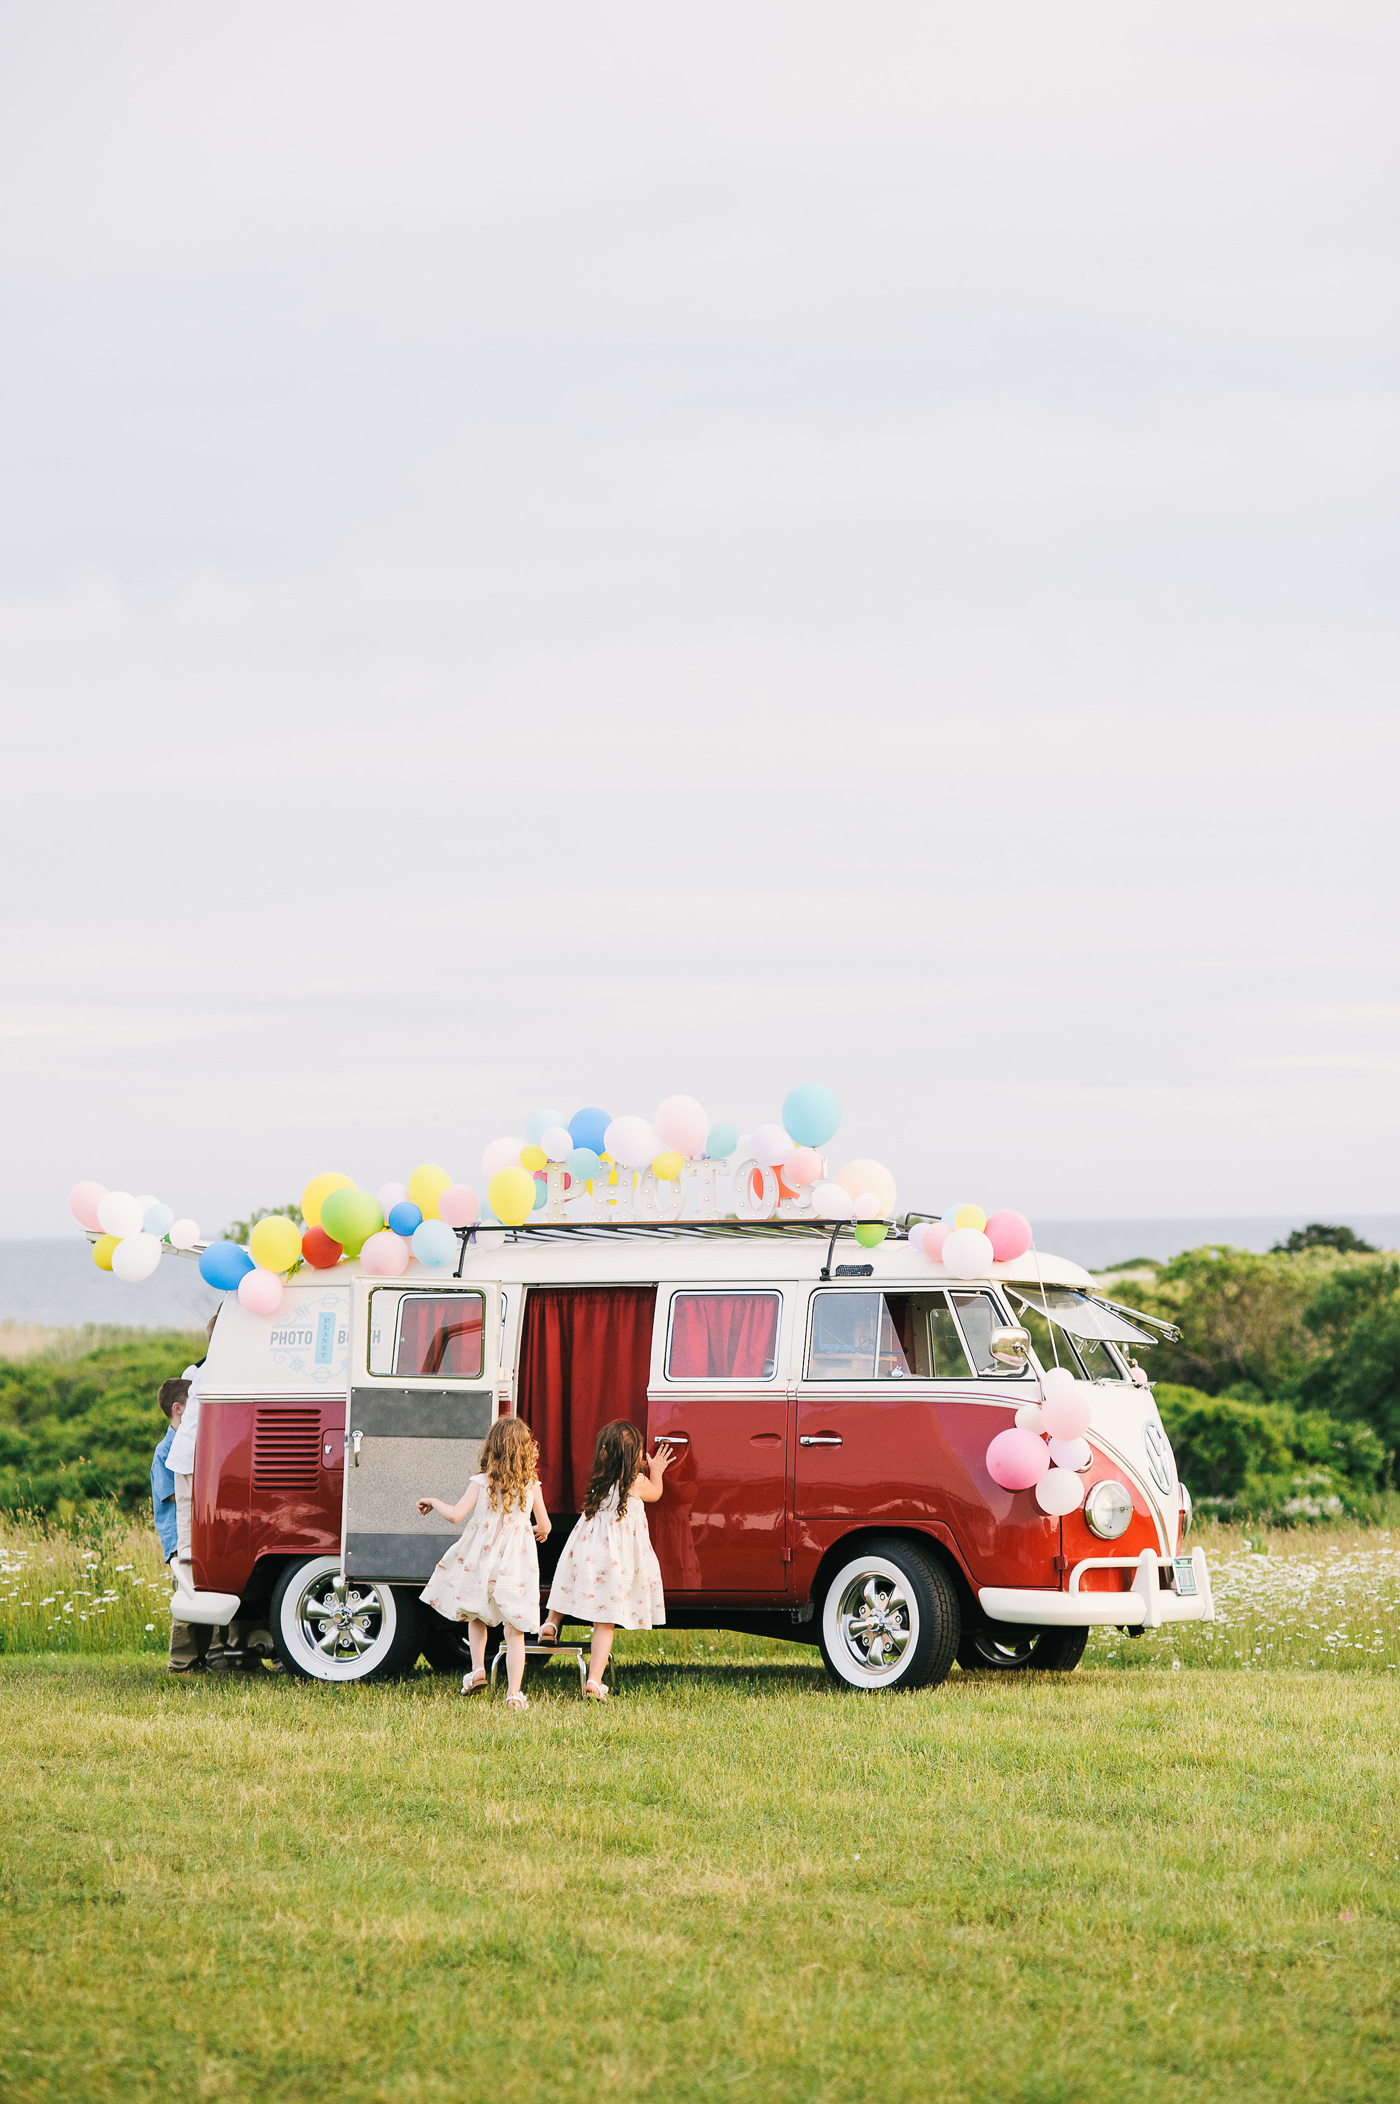 red van covered in balloons for photo booth area